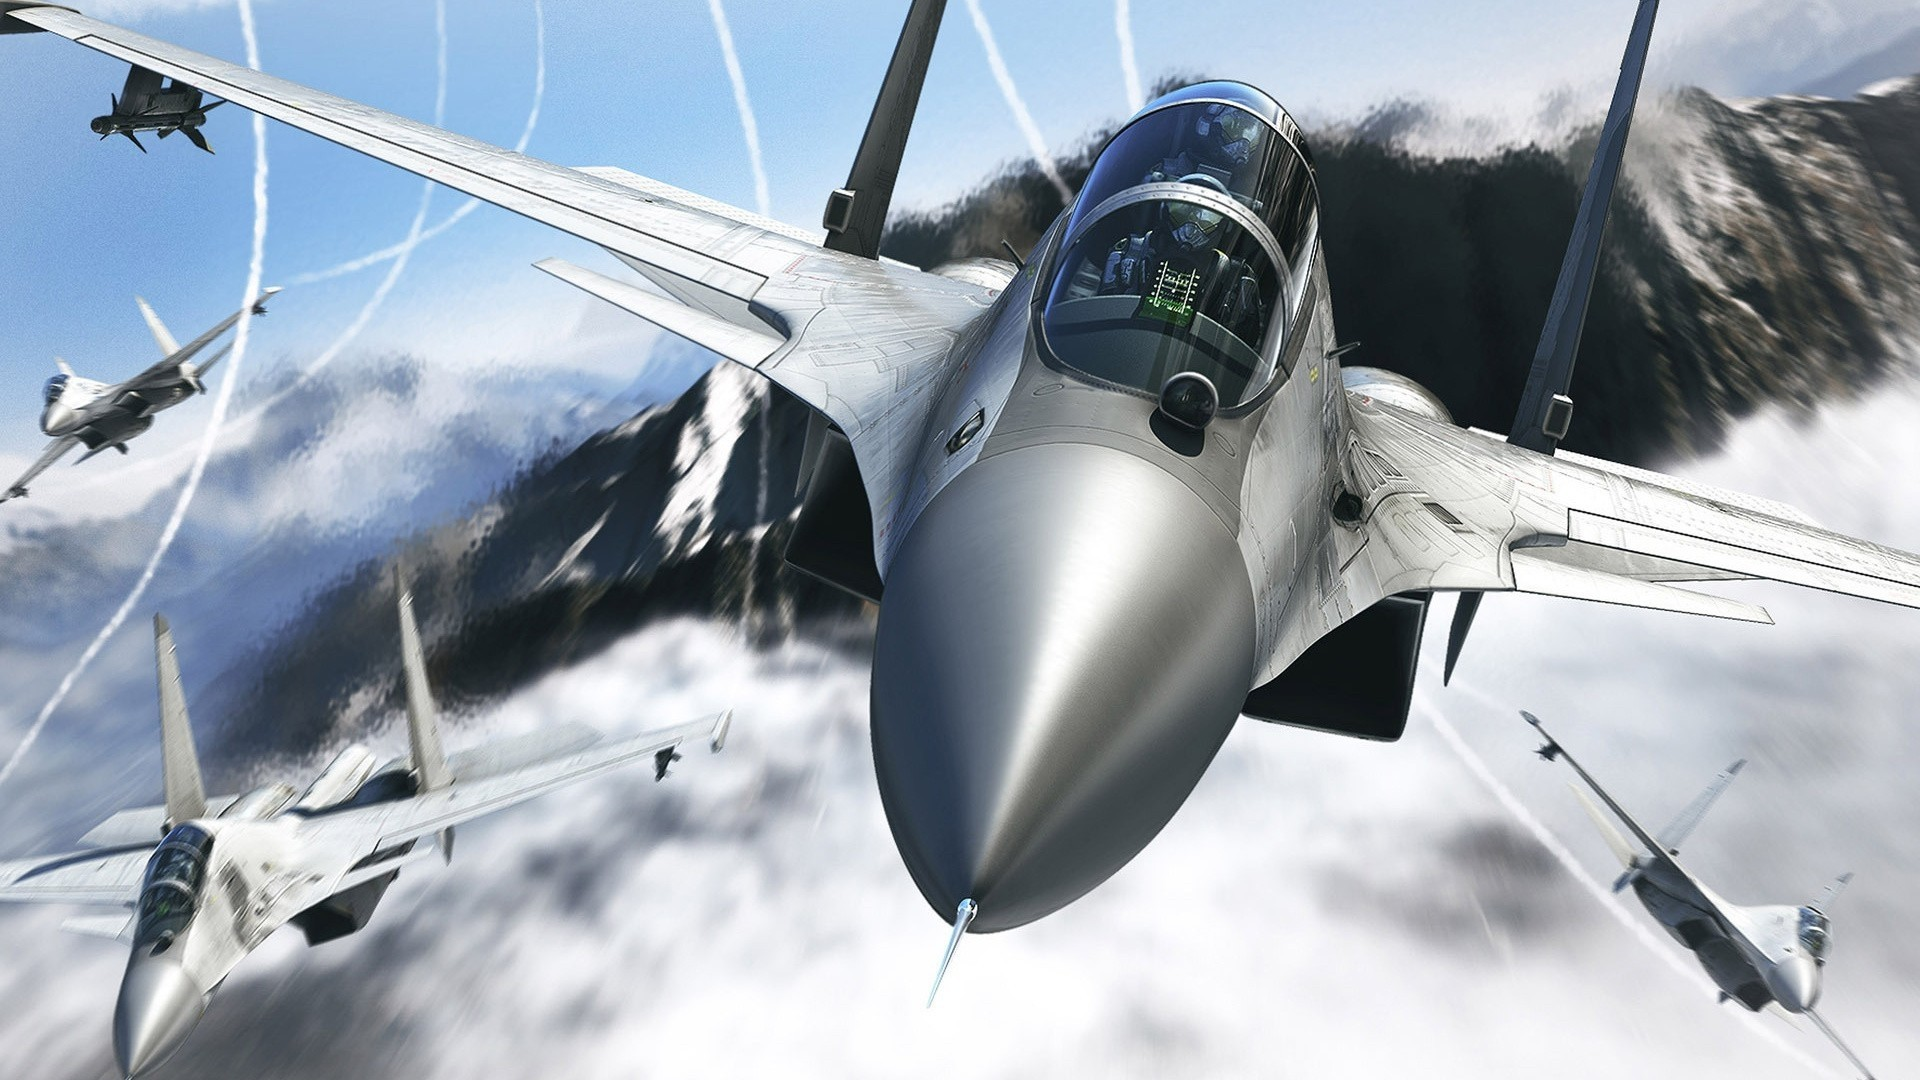 Aircraft Artwork Clouds Digital Art Fighter Jets Missiles Flanker free  iPhone or Android Full HD wallpaper.